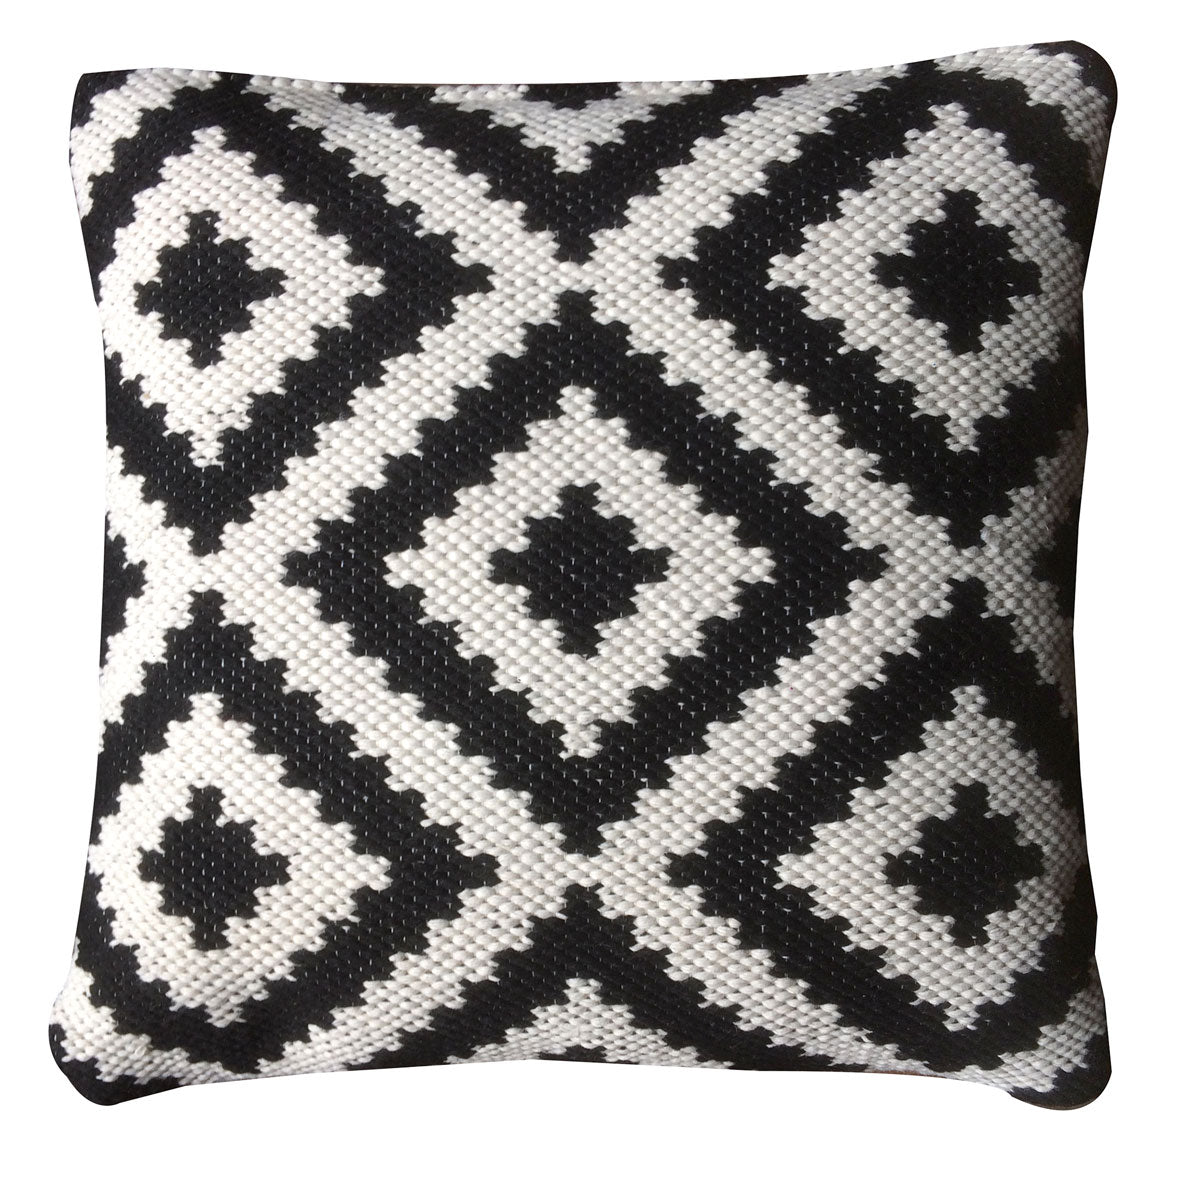 Ava Indoor Outdoor Recycled PET Cushion Cover (Black/Light Cream)( Cover only)